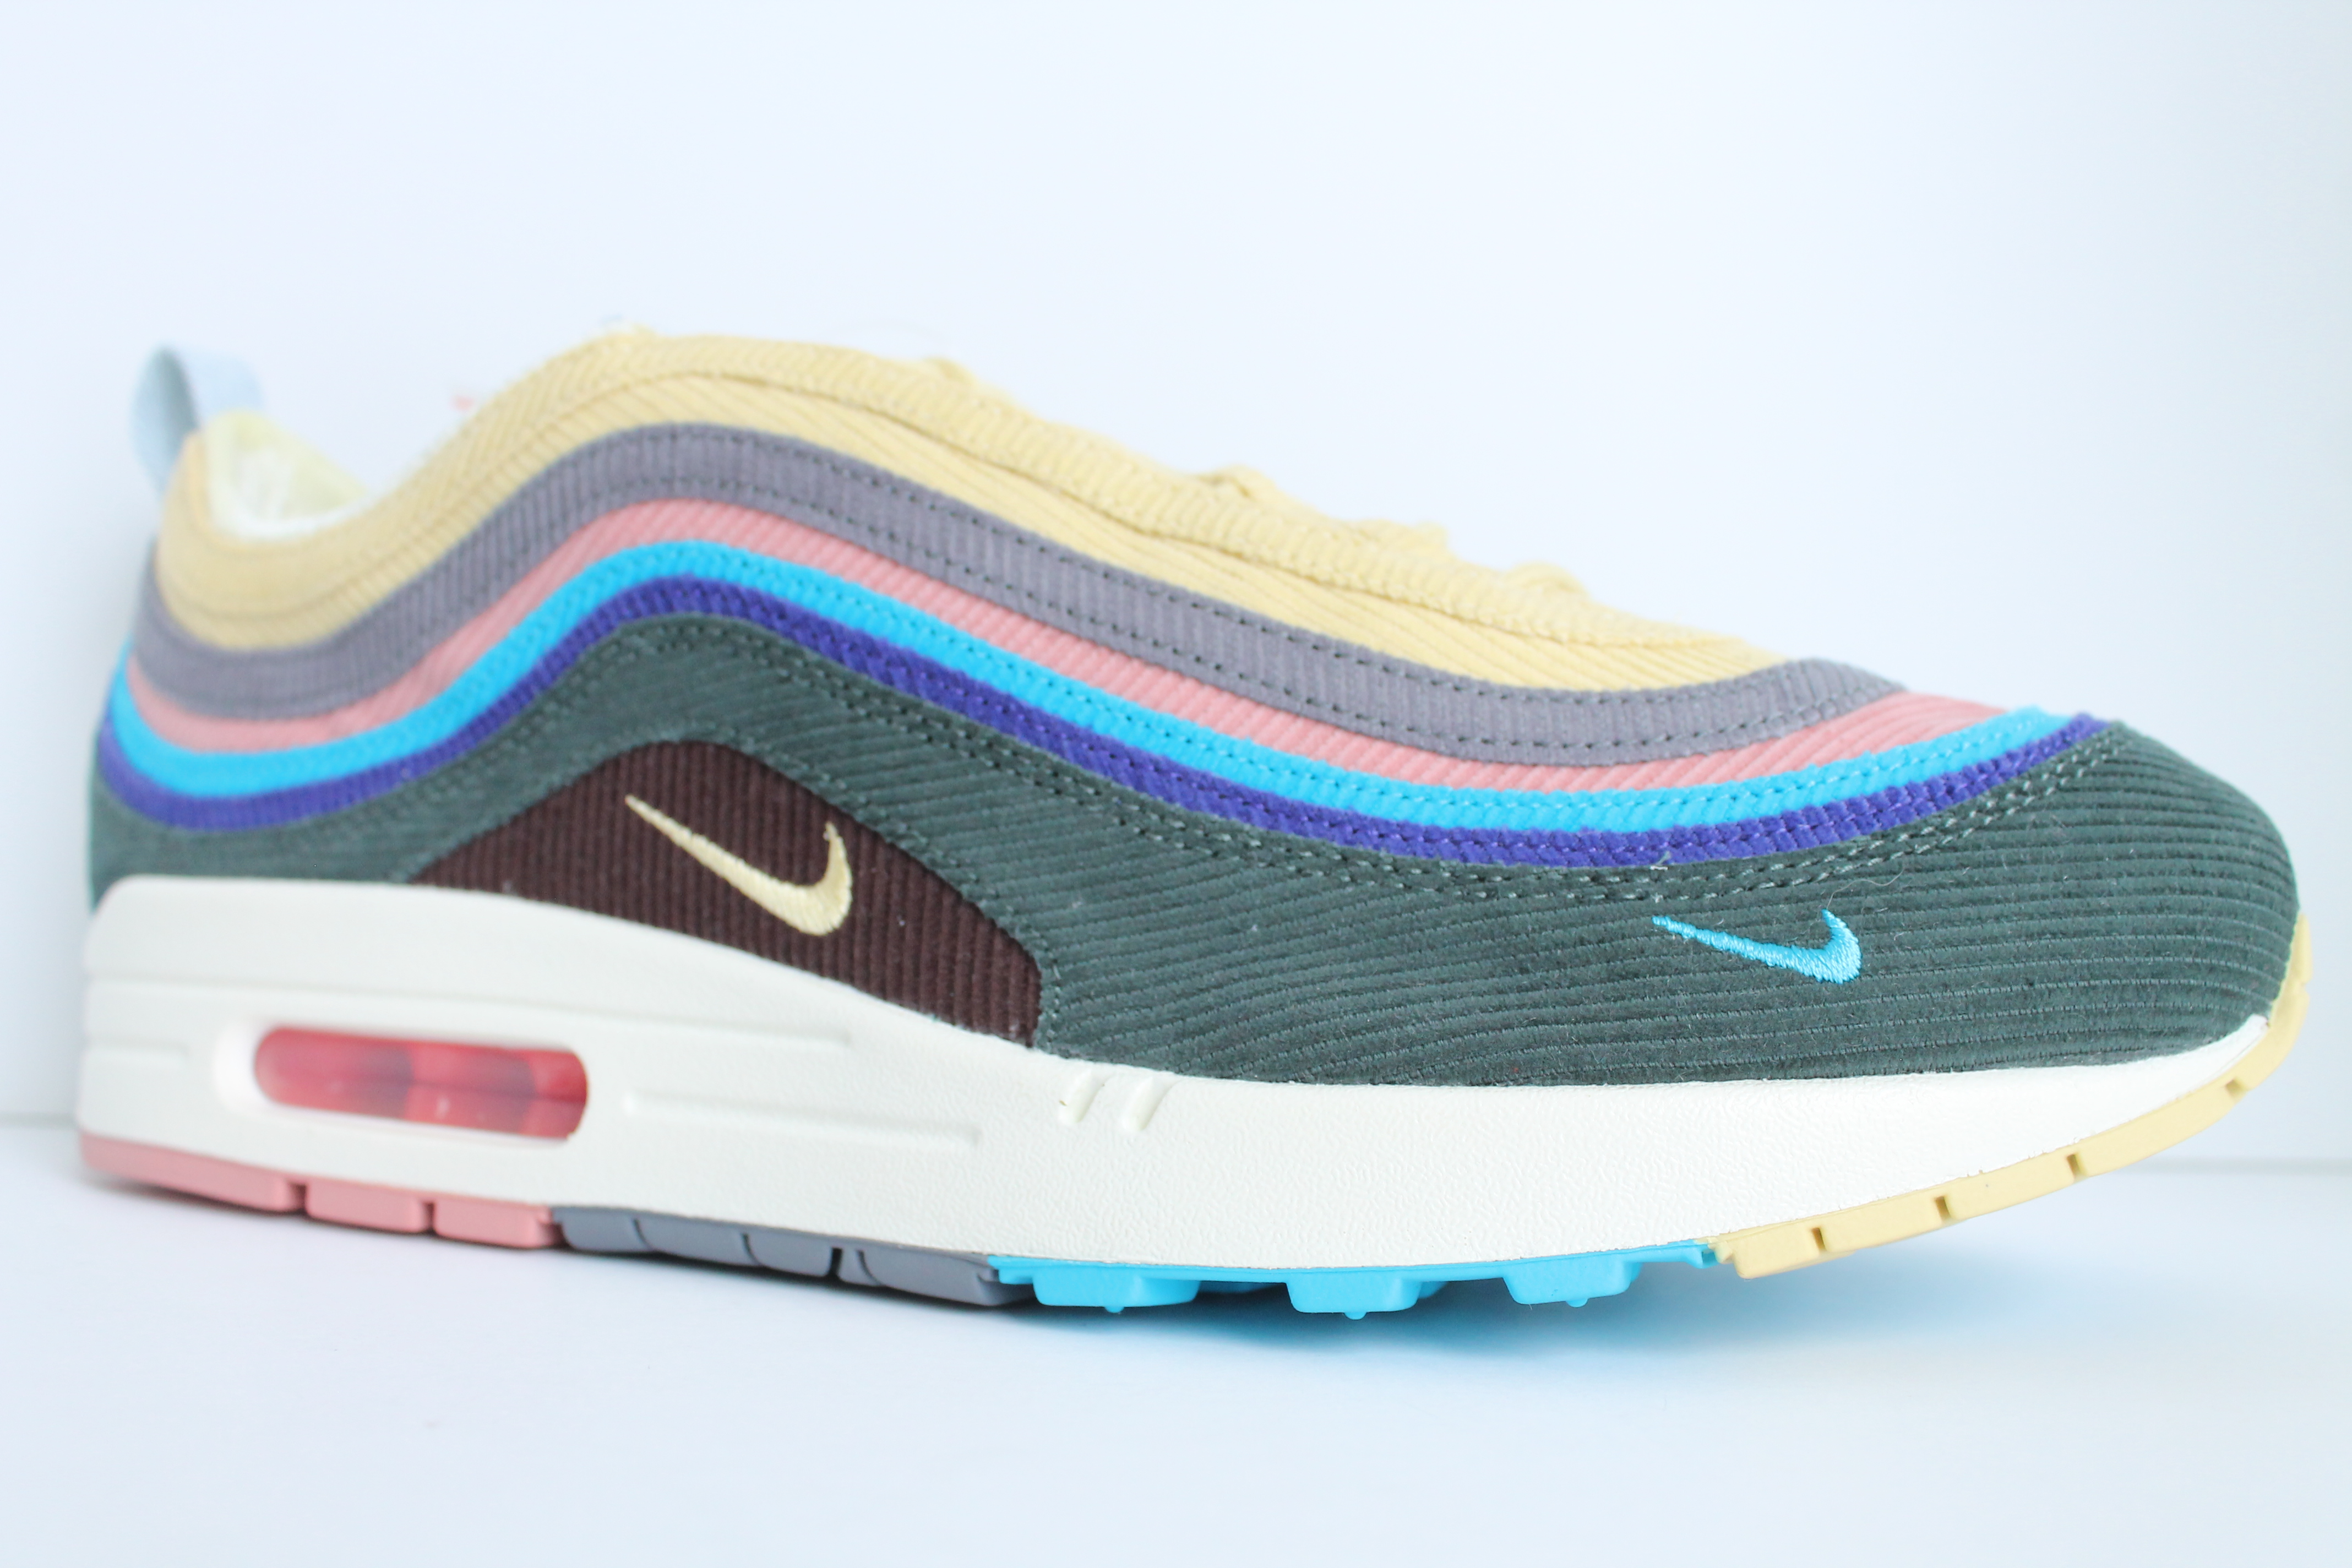 nike air max 197 sean wotherspoon size 11 aj4219 400 100